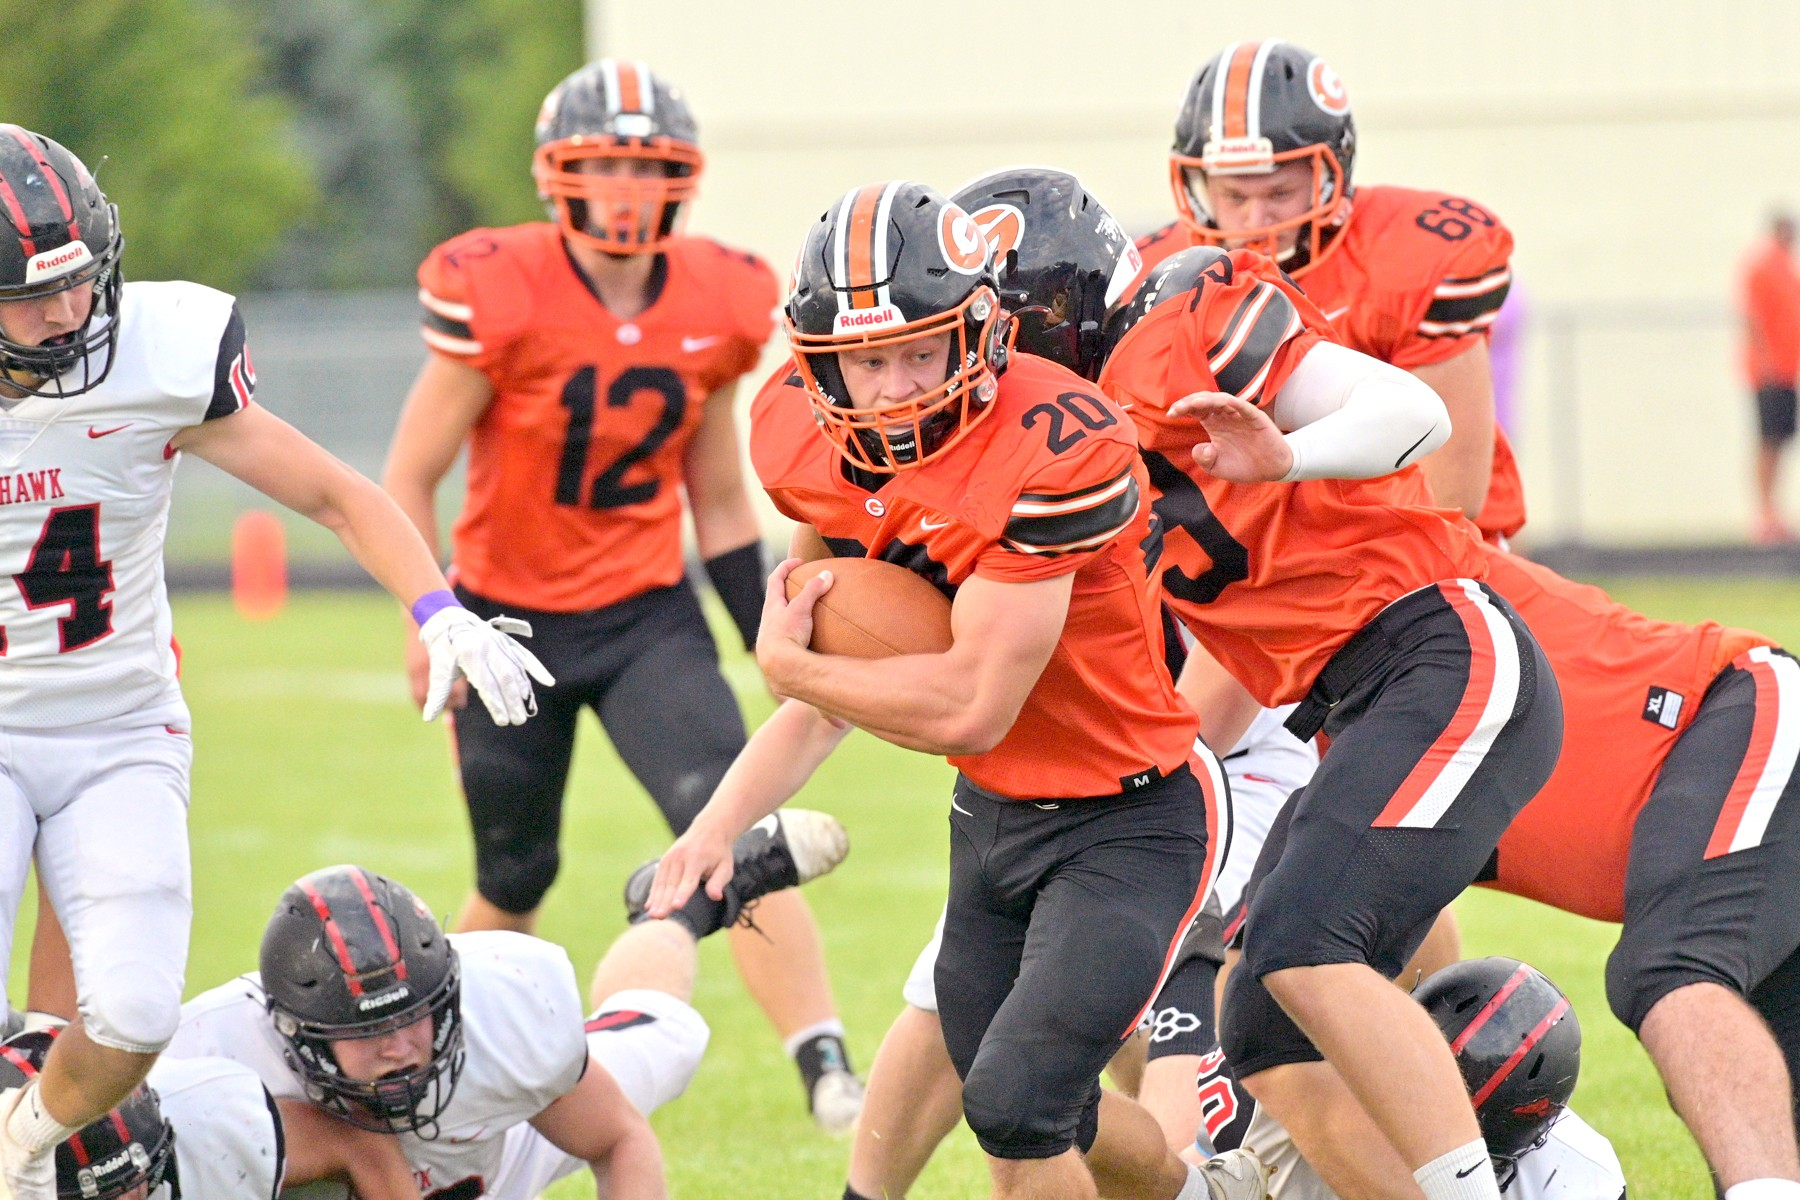 """Gibsonburg junior fullback Conner Smith has 792 yards rushing through five games. (Photo courtesy Innovations Portrait Studio/<a href=""""http://www.InnovationsVisualImpact.com"""">www.InnovationsVisualImpact.com</a>)"""